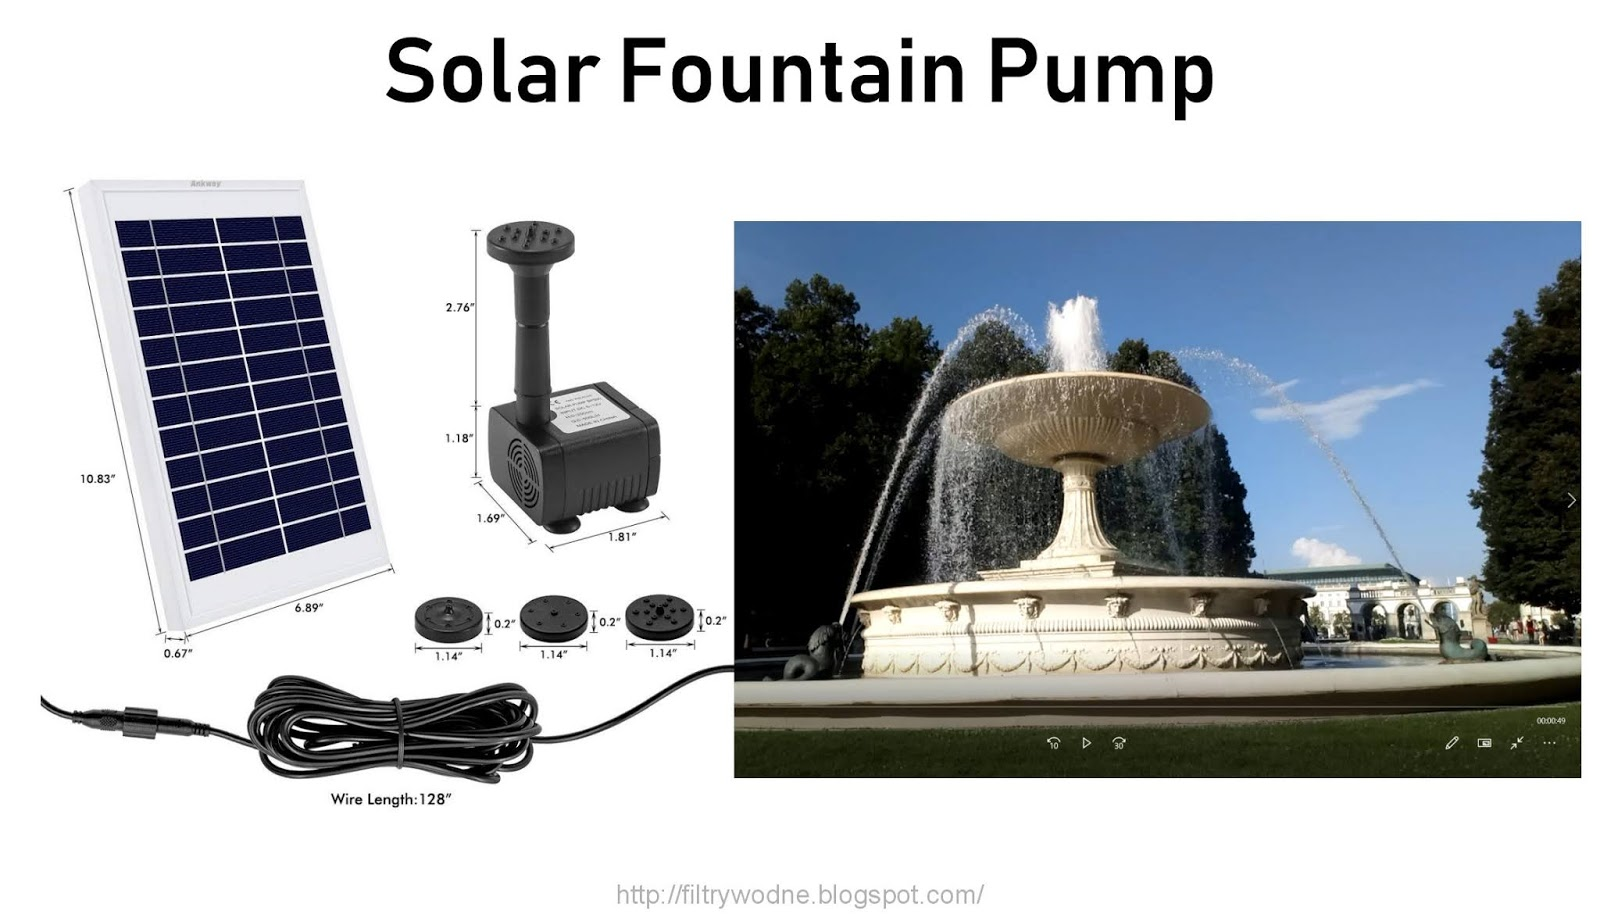 Solar Fountain Pump Water Filters Air Filters Filter System Solar Fountain Pump